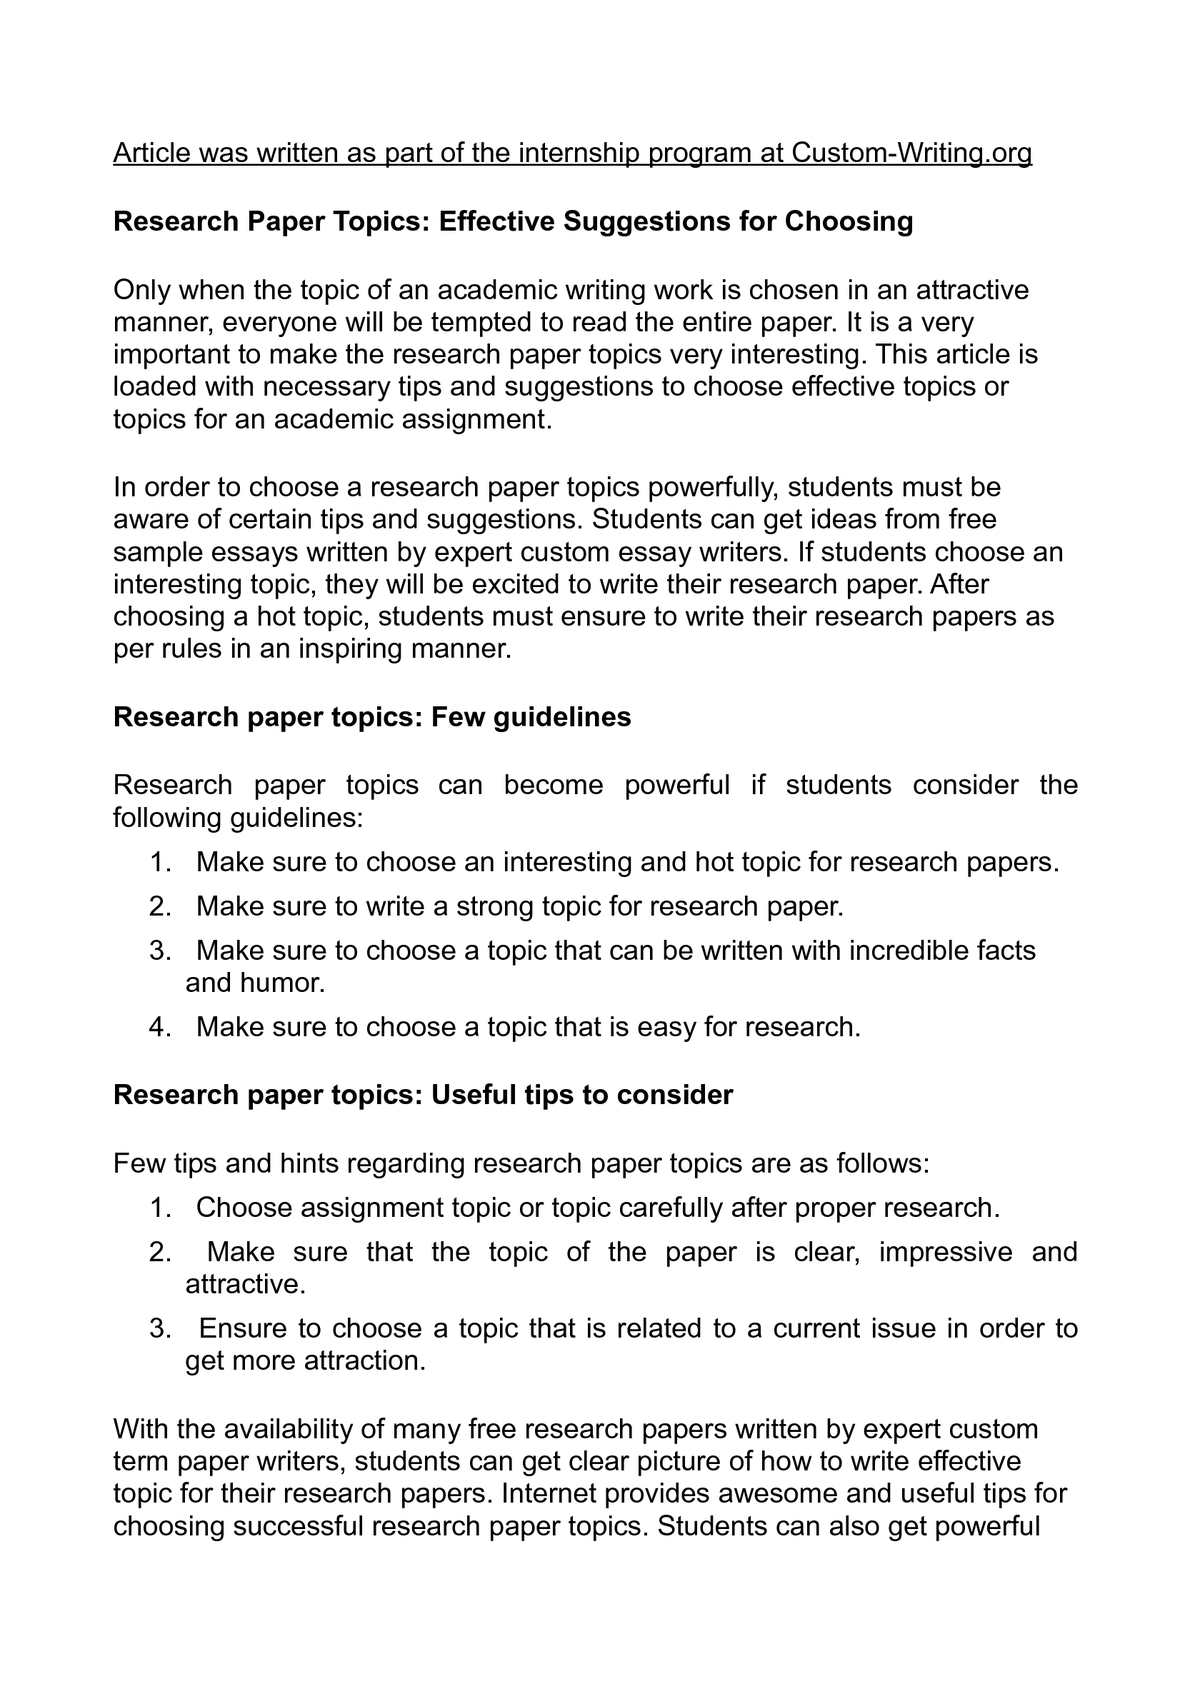 016 Easy Research Paper Topics Fantastic To Write About For Computer Science Full